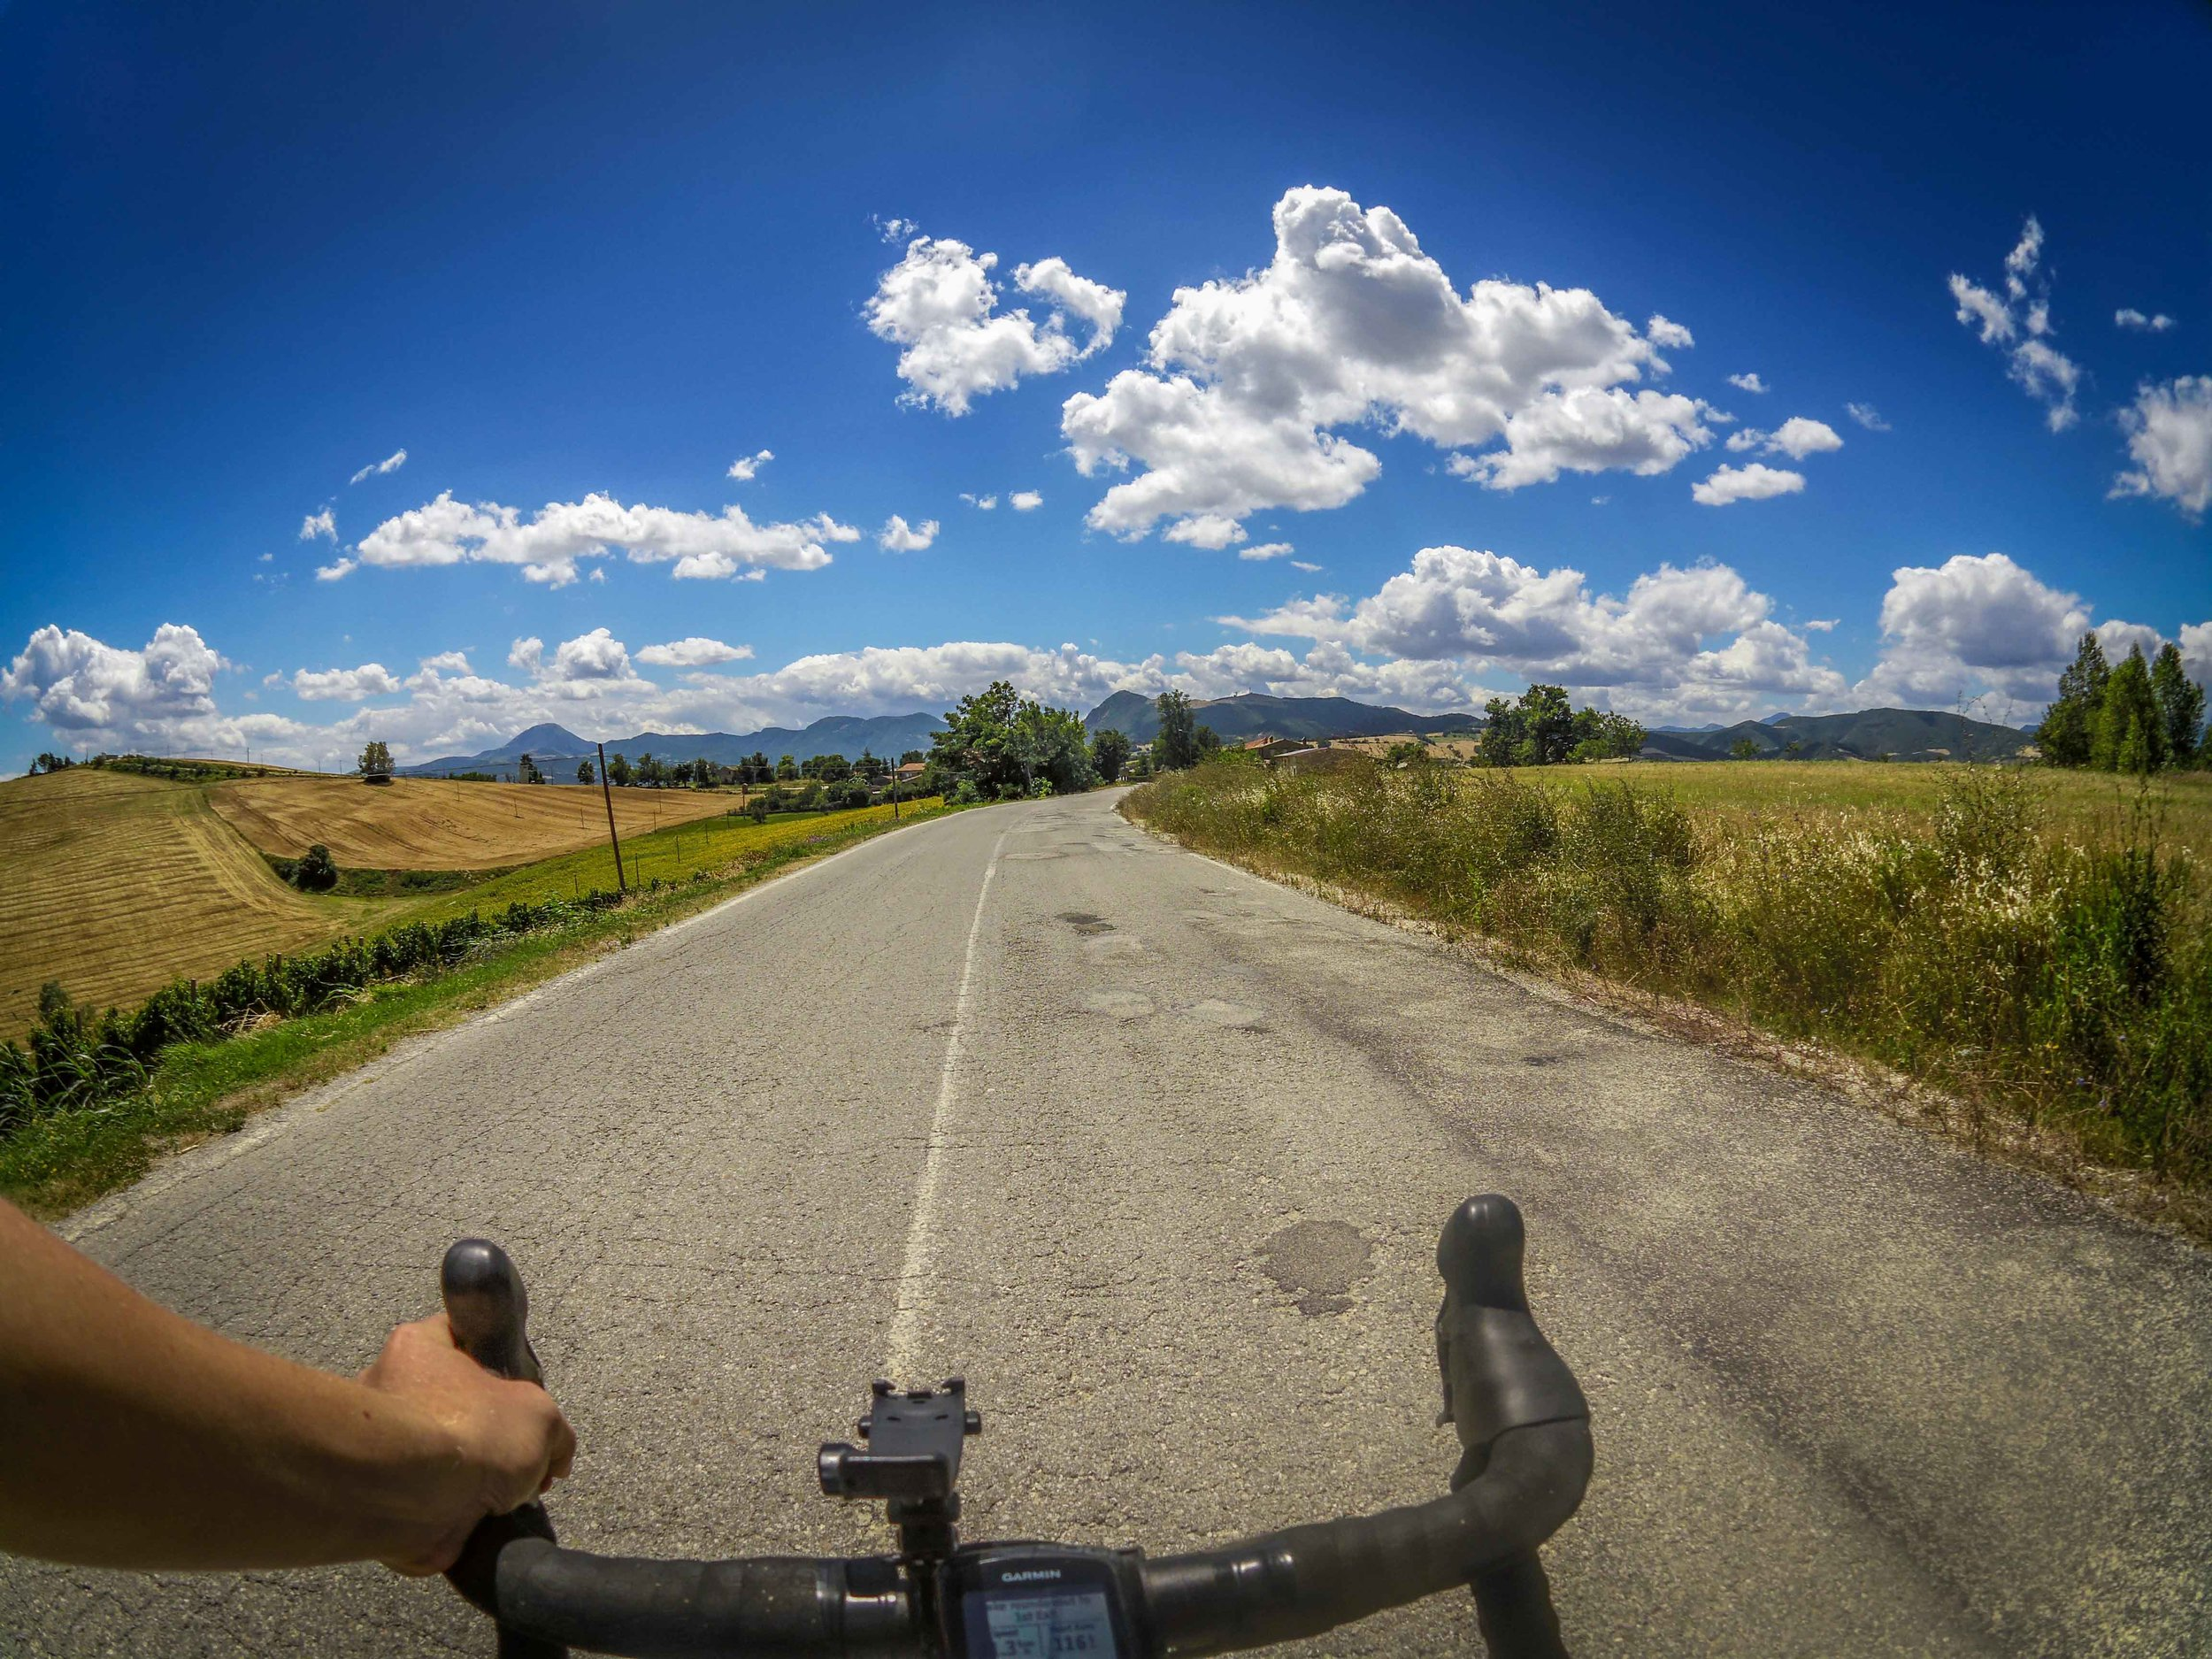 View from route between Castelplanio to Trivio.